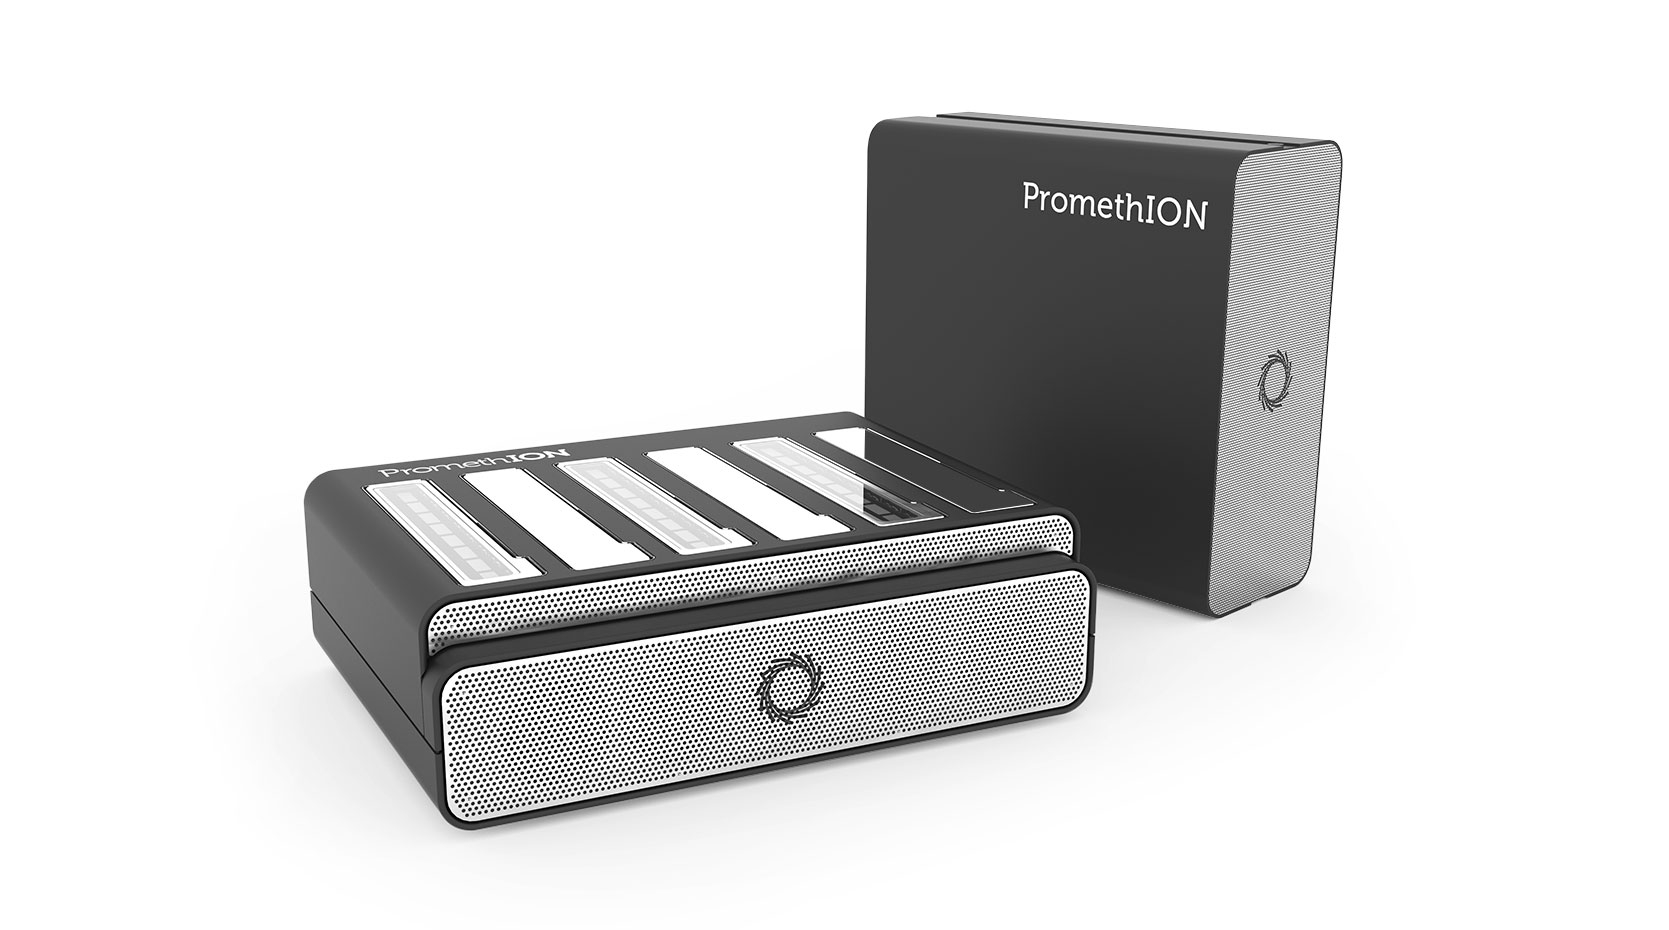 PromethION High throughput DNA sequencer